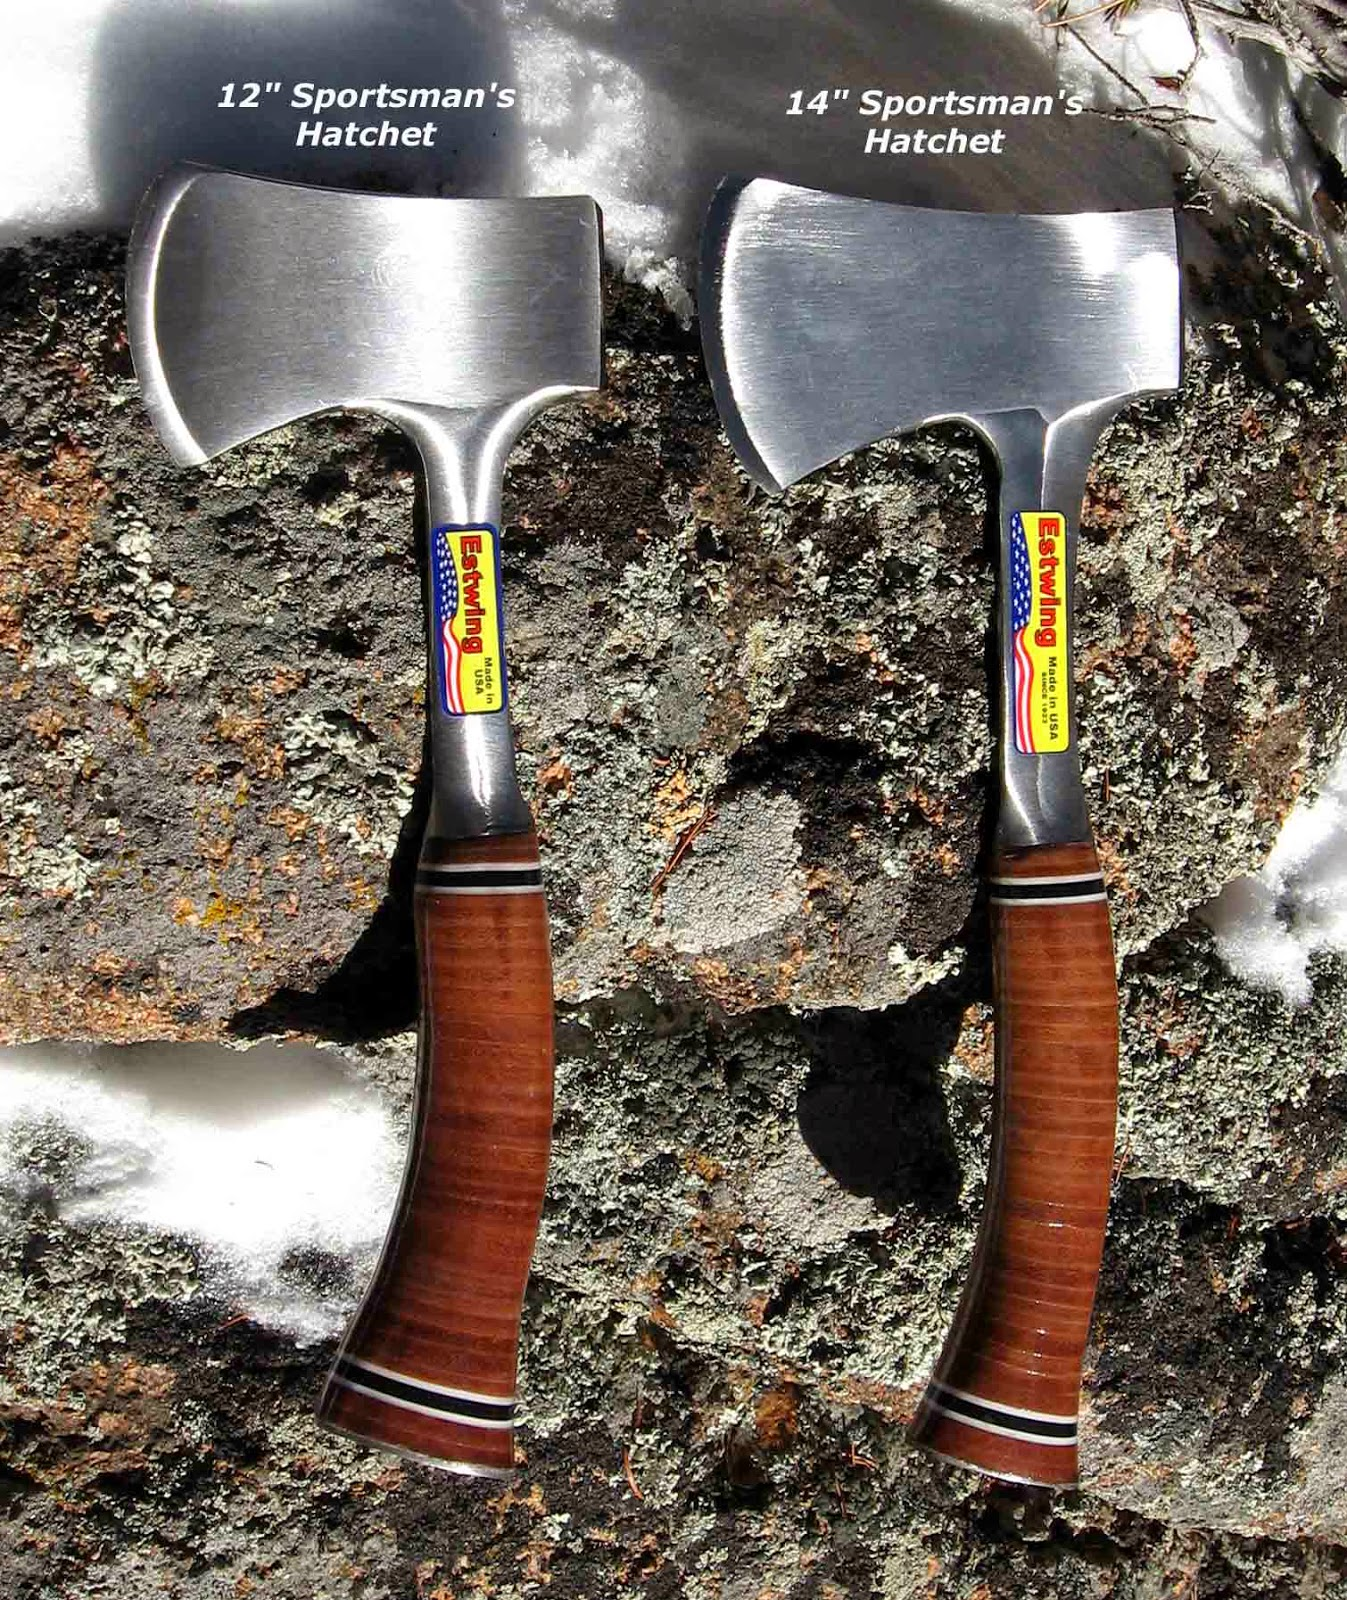 Rocky Mountain Bushcraft Knife Vs Hatchet Which Is The